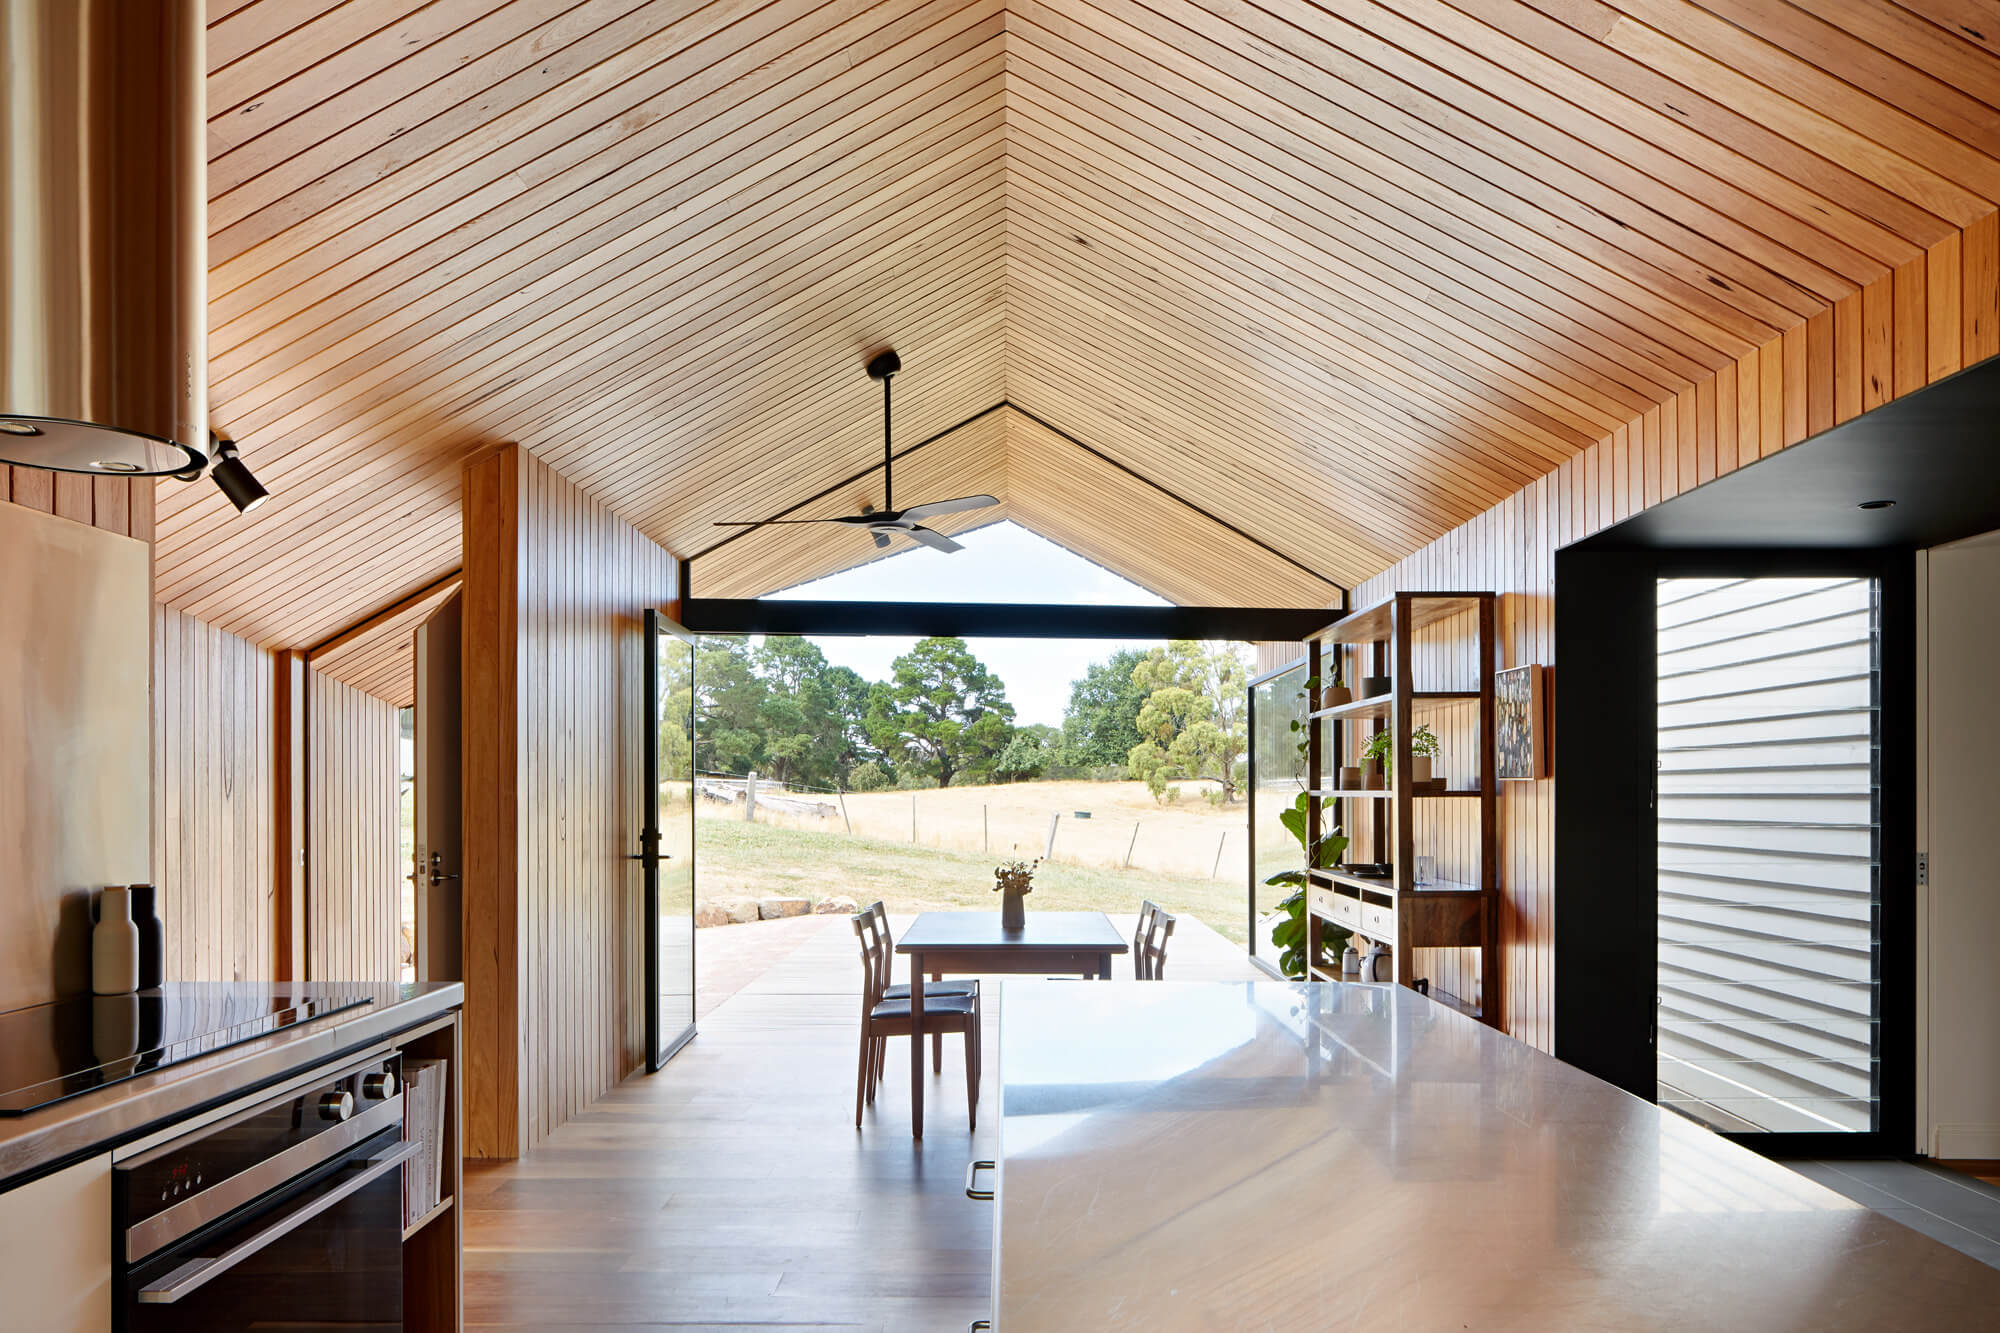 Limerick House by Solomon Troup Architects